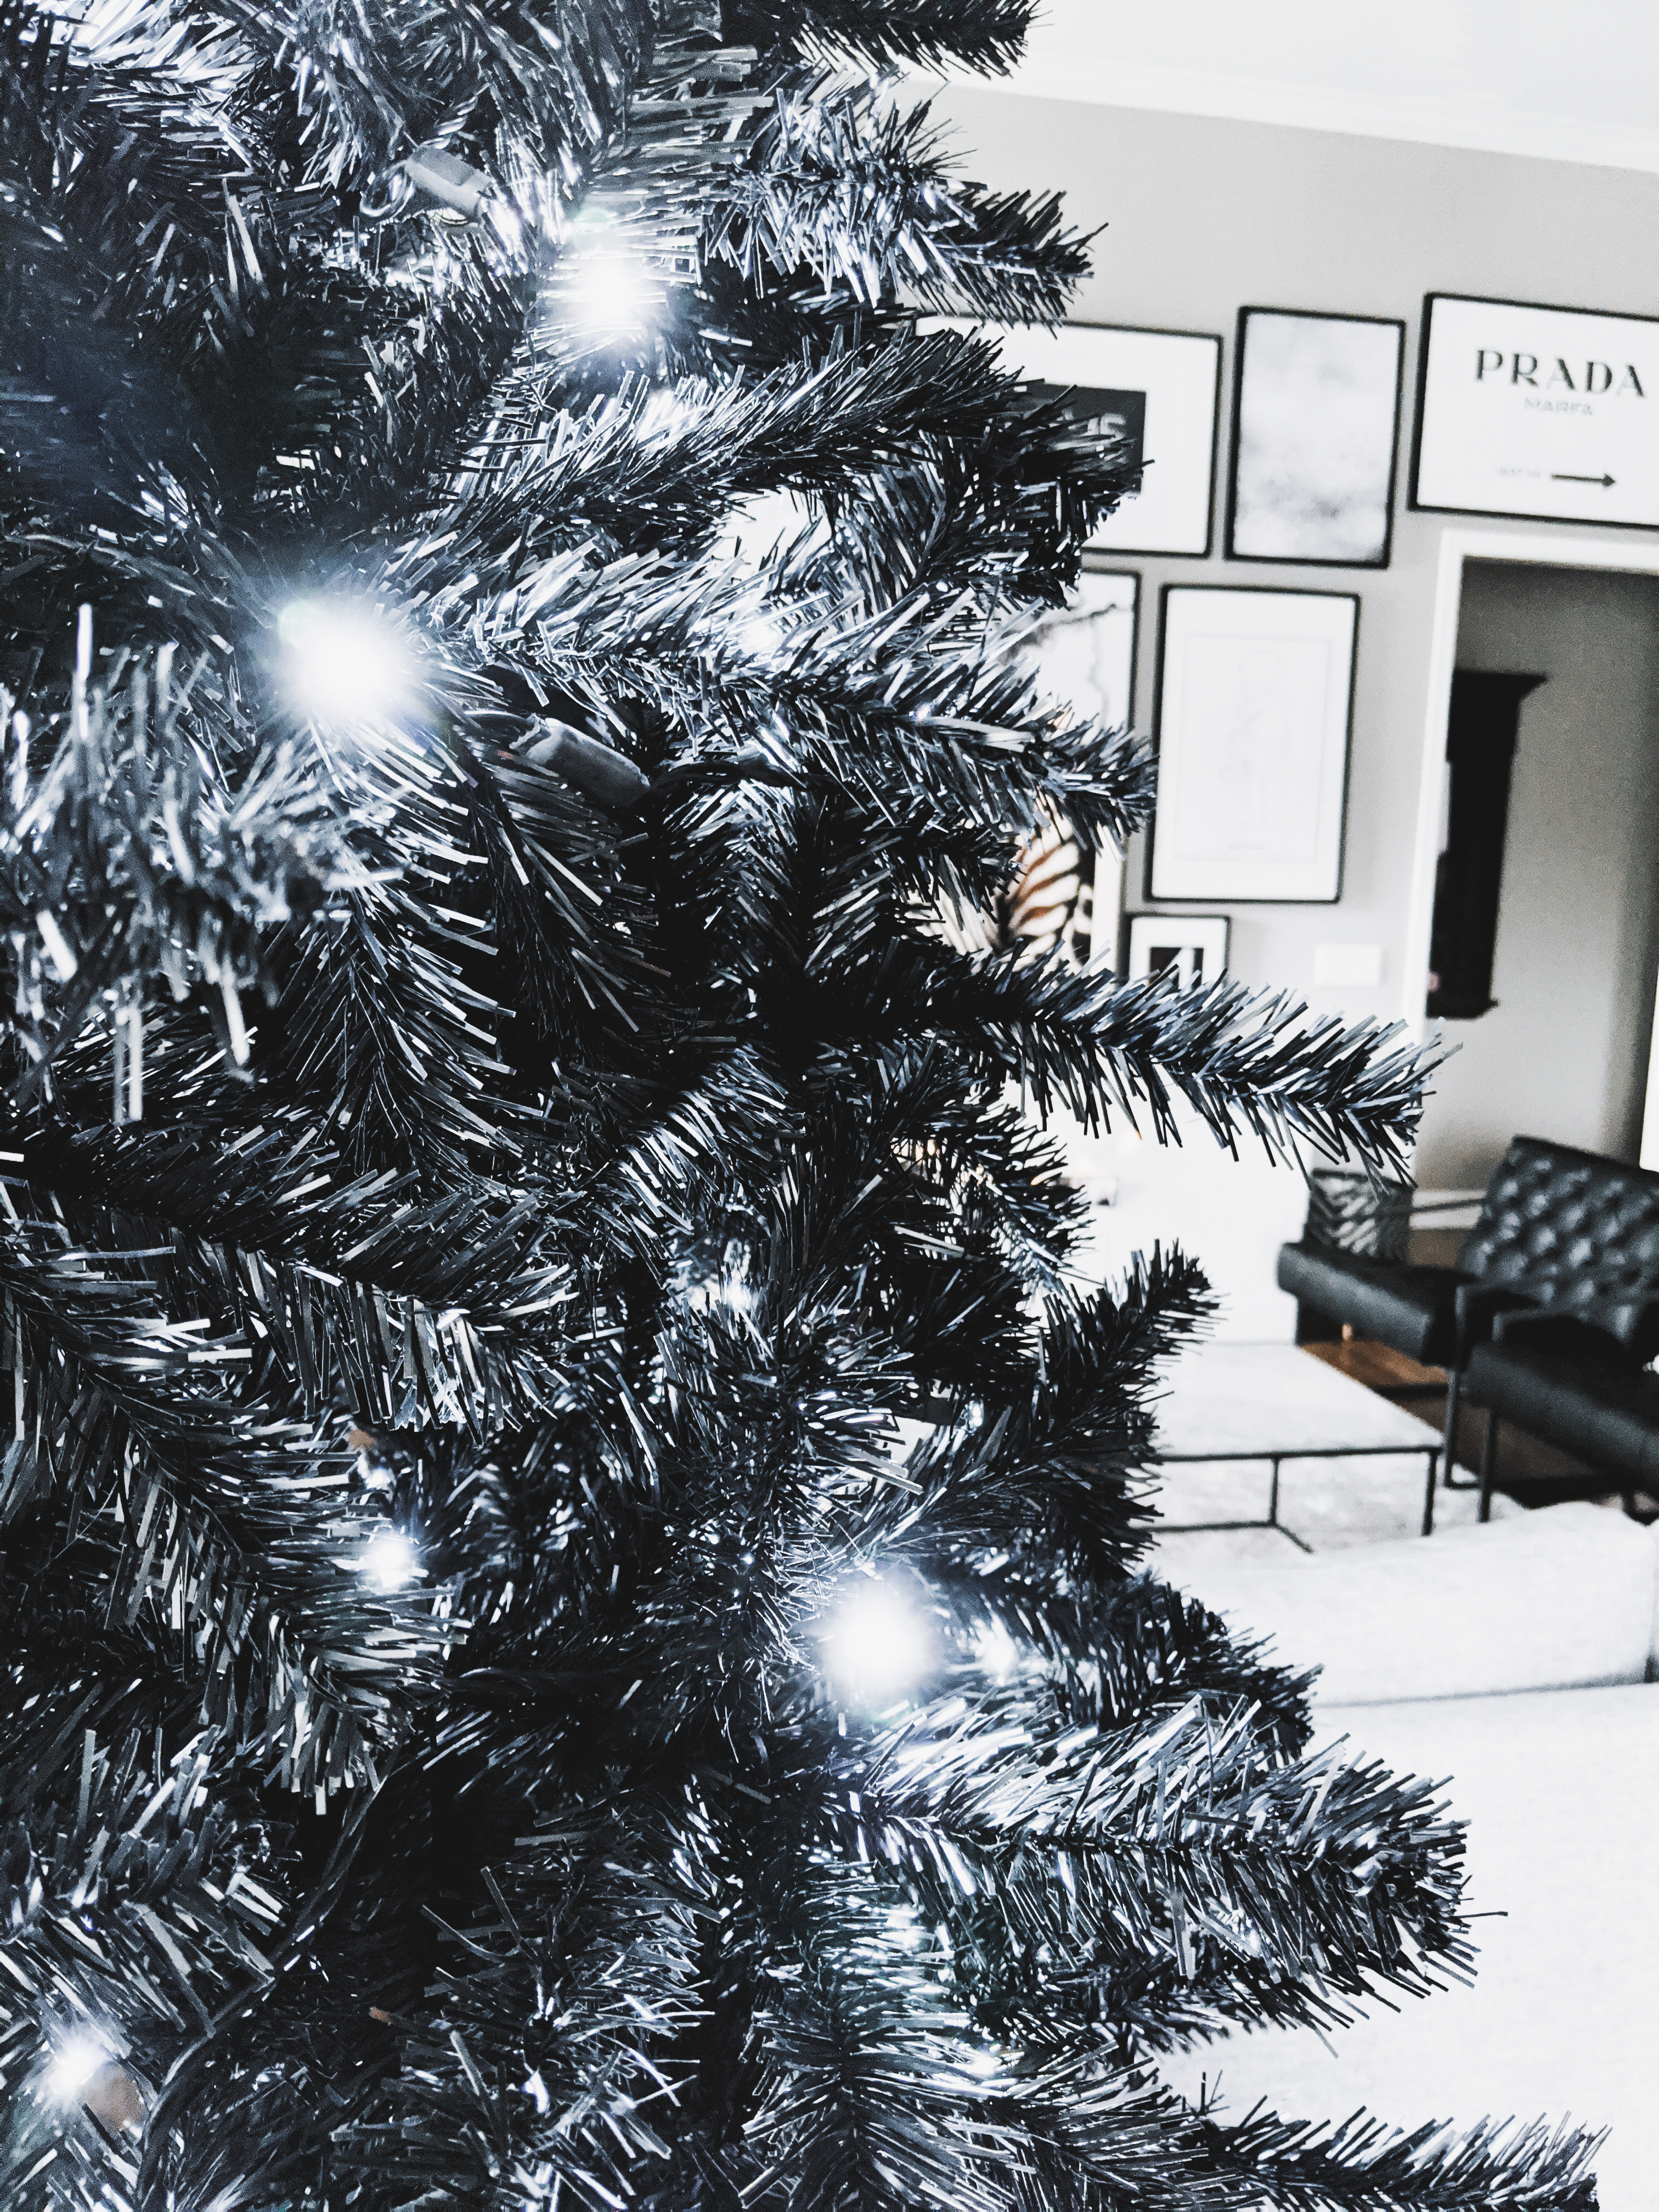 Black Christmas Tree - Modern Christmas Decor: A black Christmas tree is sophisticated, stylish, and unexpected. See how to decorate a black Christmas tree for modern Christmas decor! (Sponsored by Wayfair). #modernhome #christmasdecor #christmastree